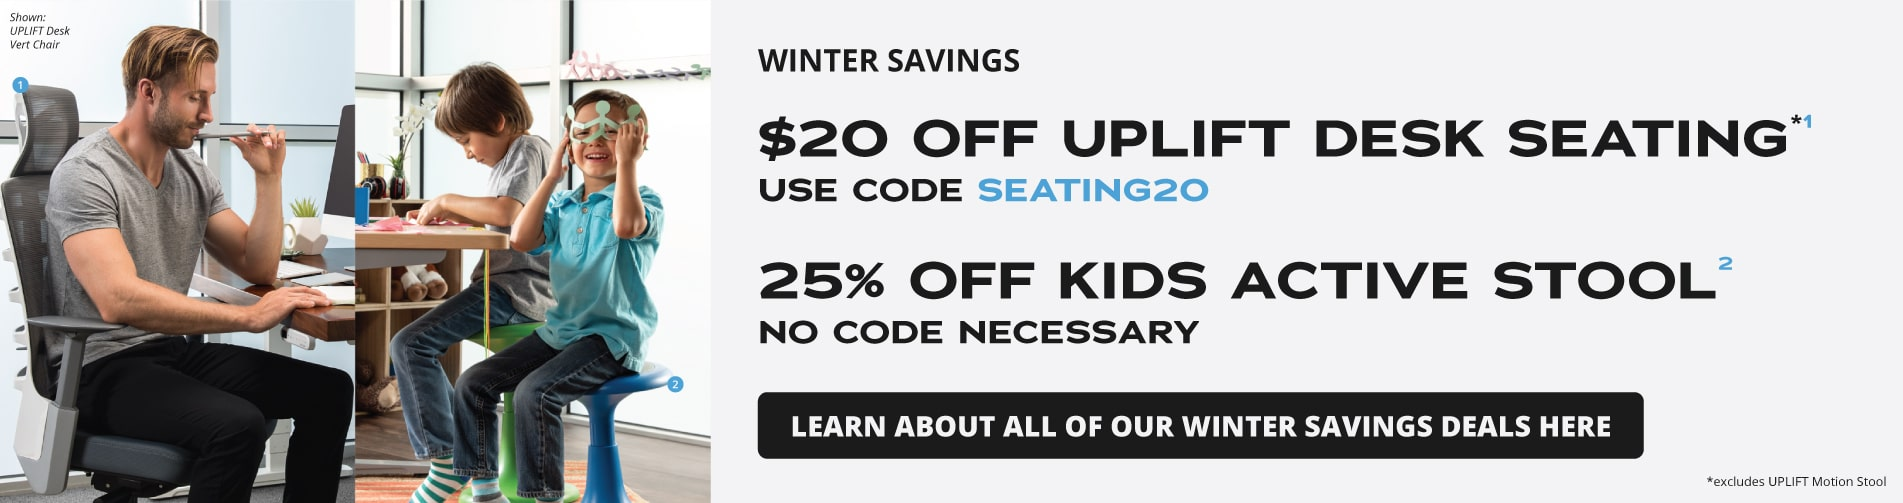 Winter Savings- $20 off UPLIFT Desk Seating